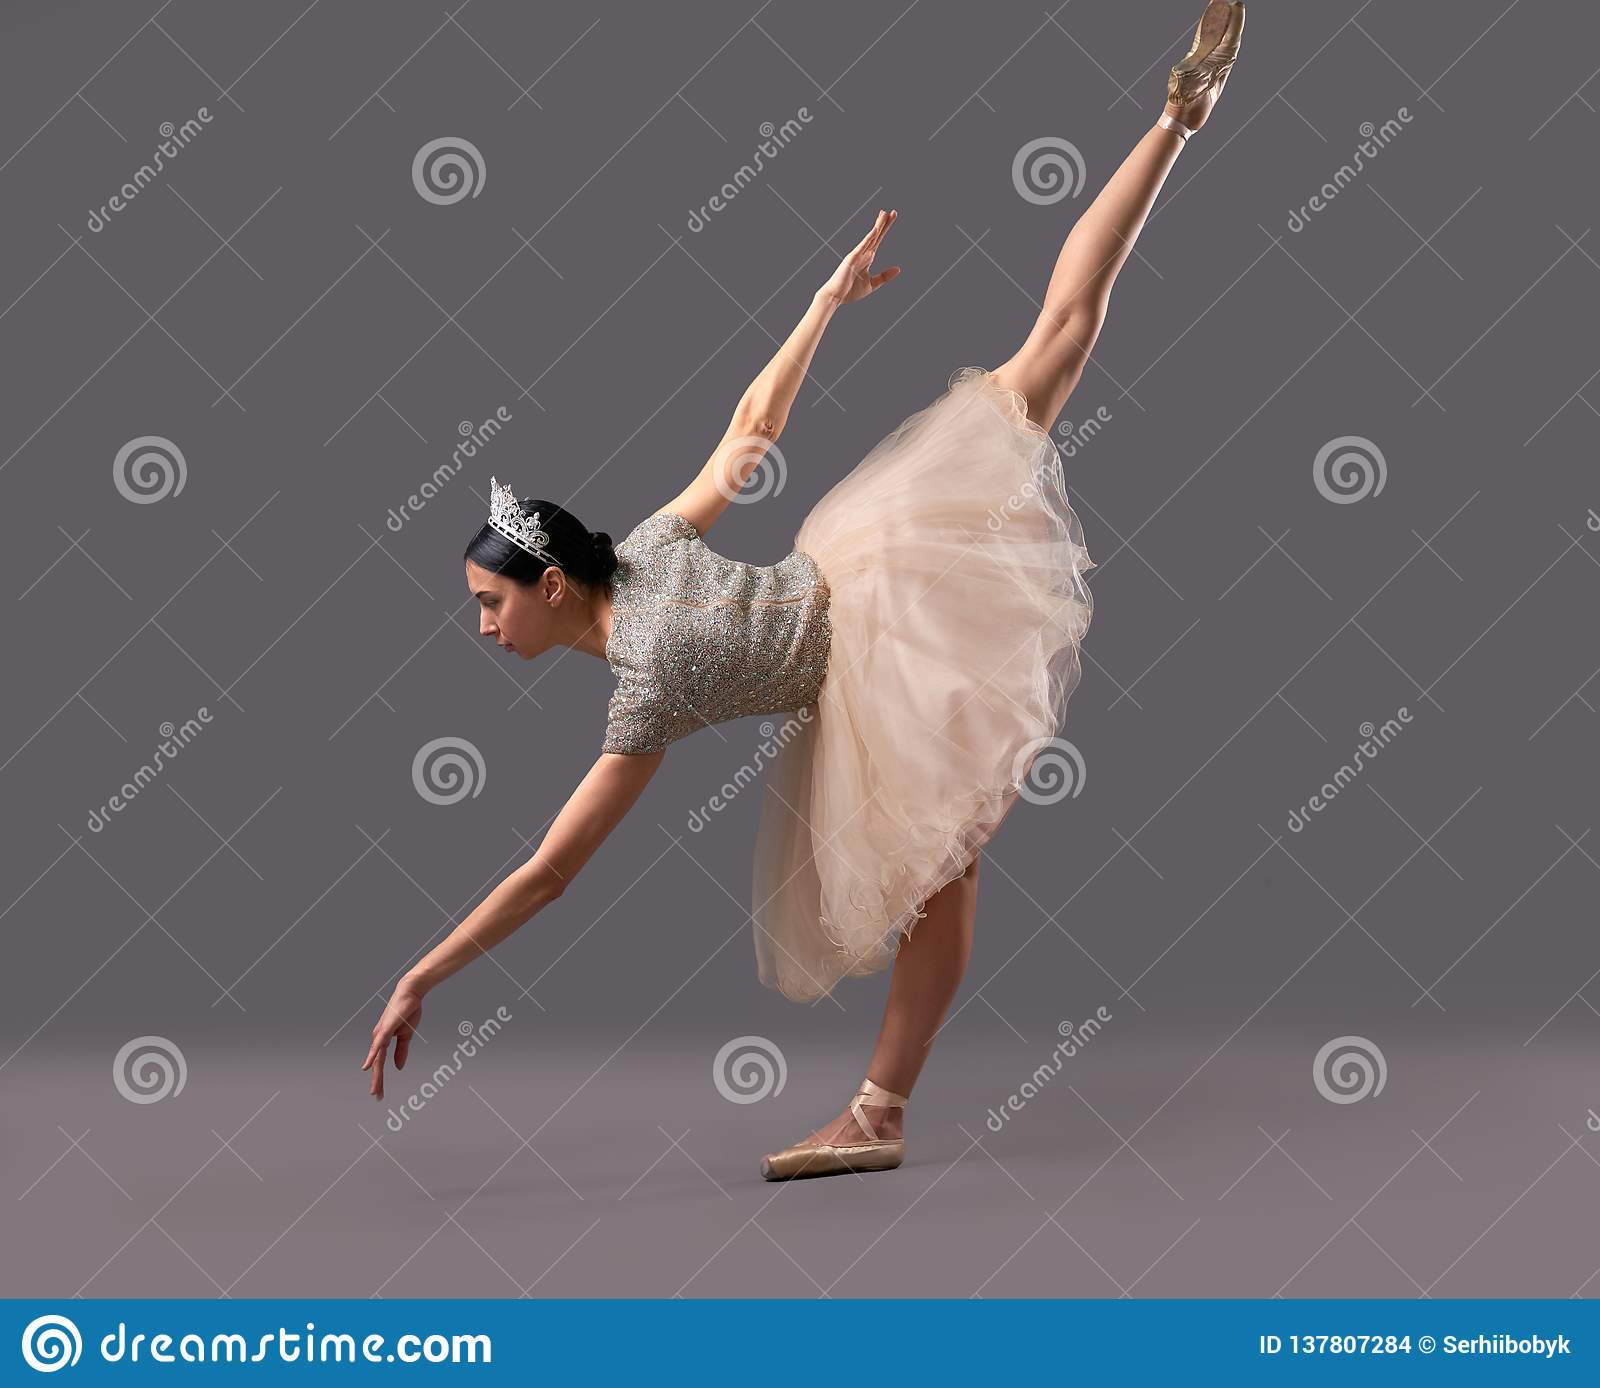 best service 9fb6e 84f6a Ballerina Bending Down And Raising One Leg Up In Studio ...